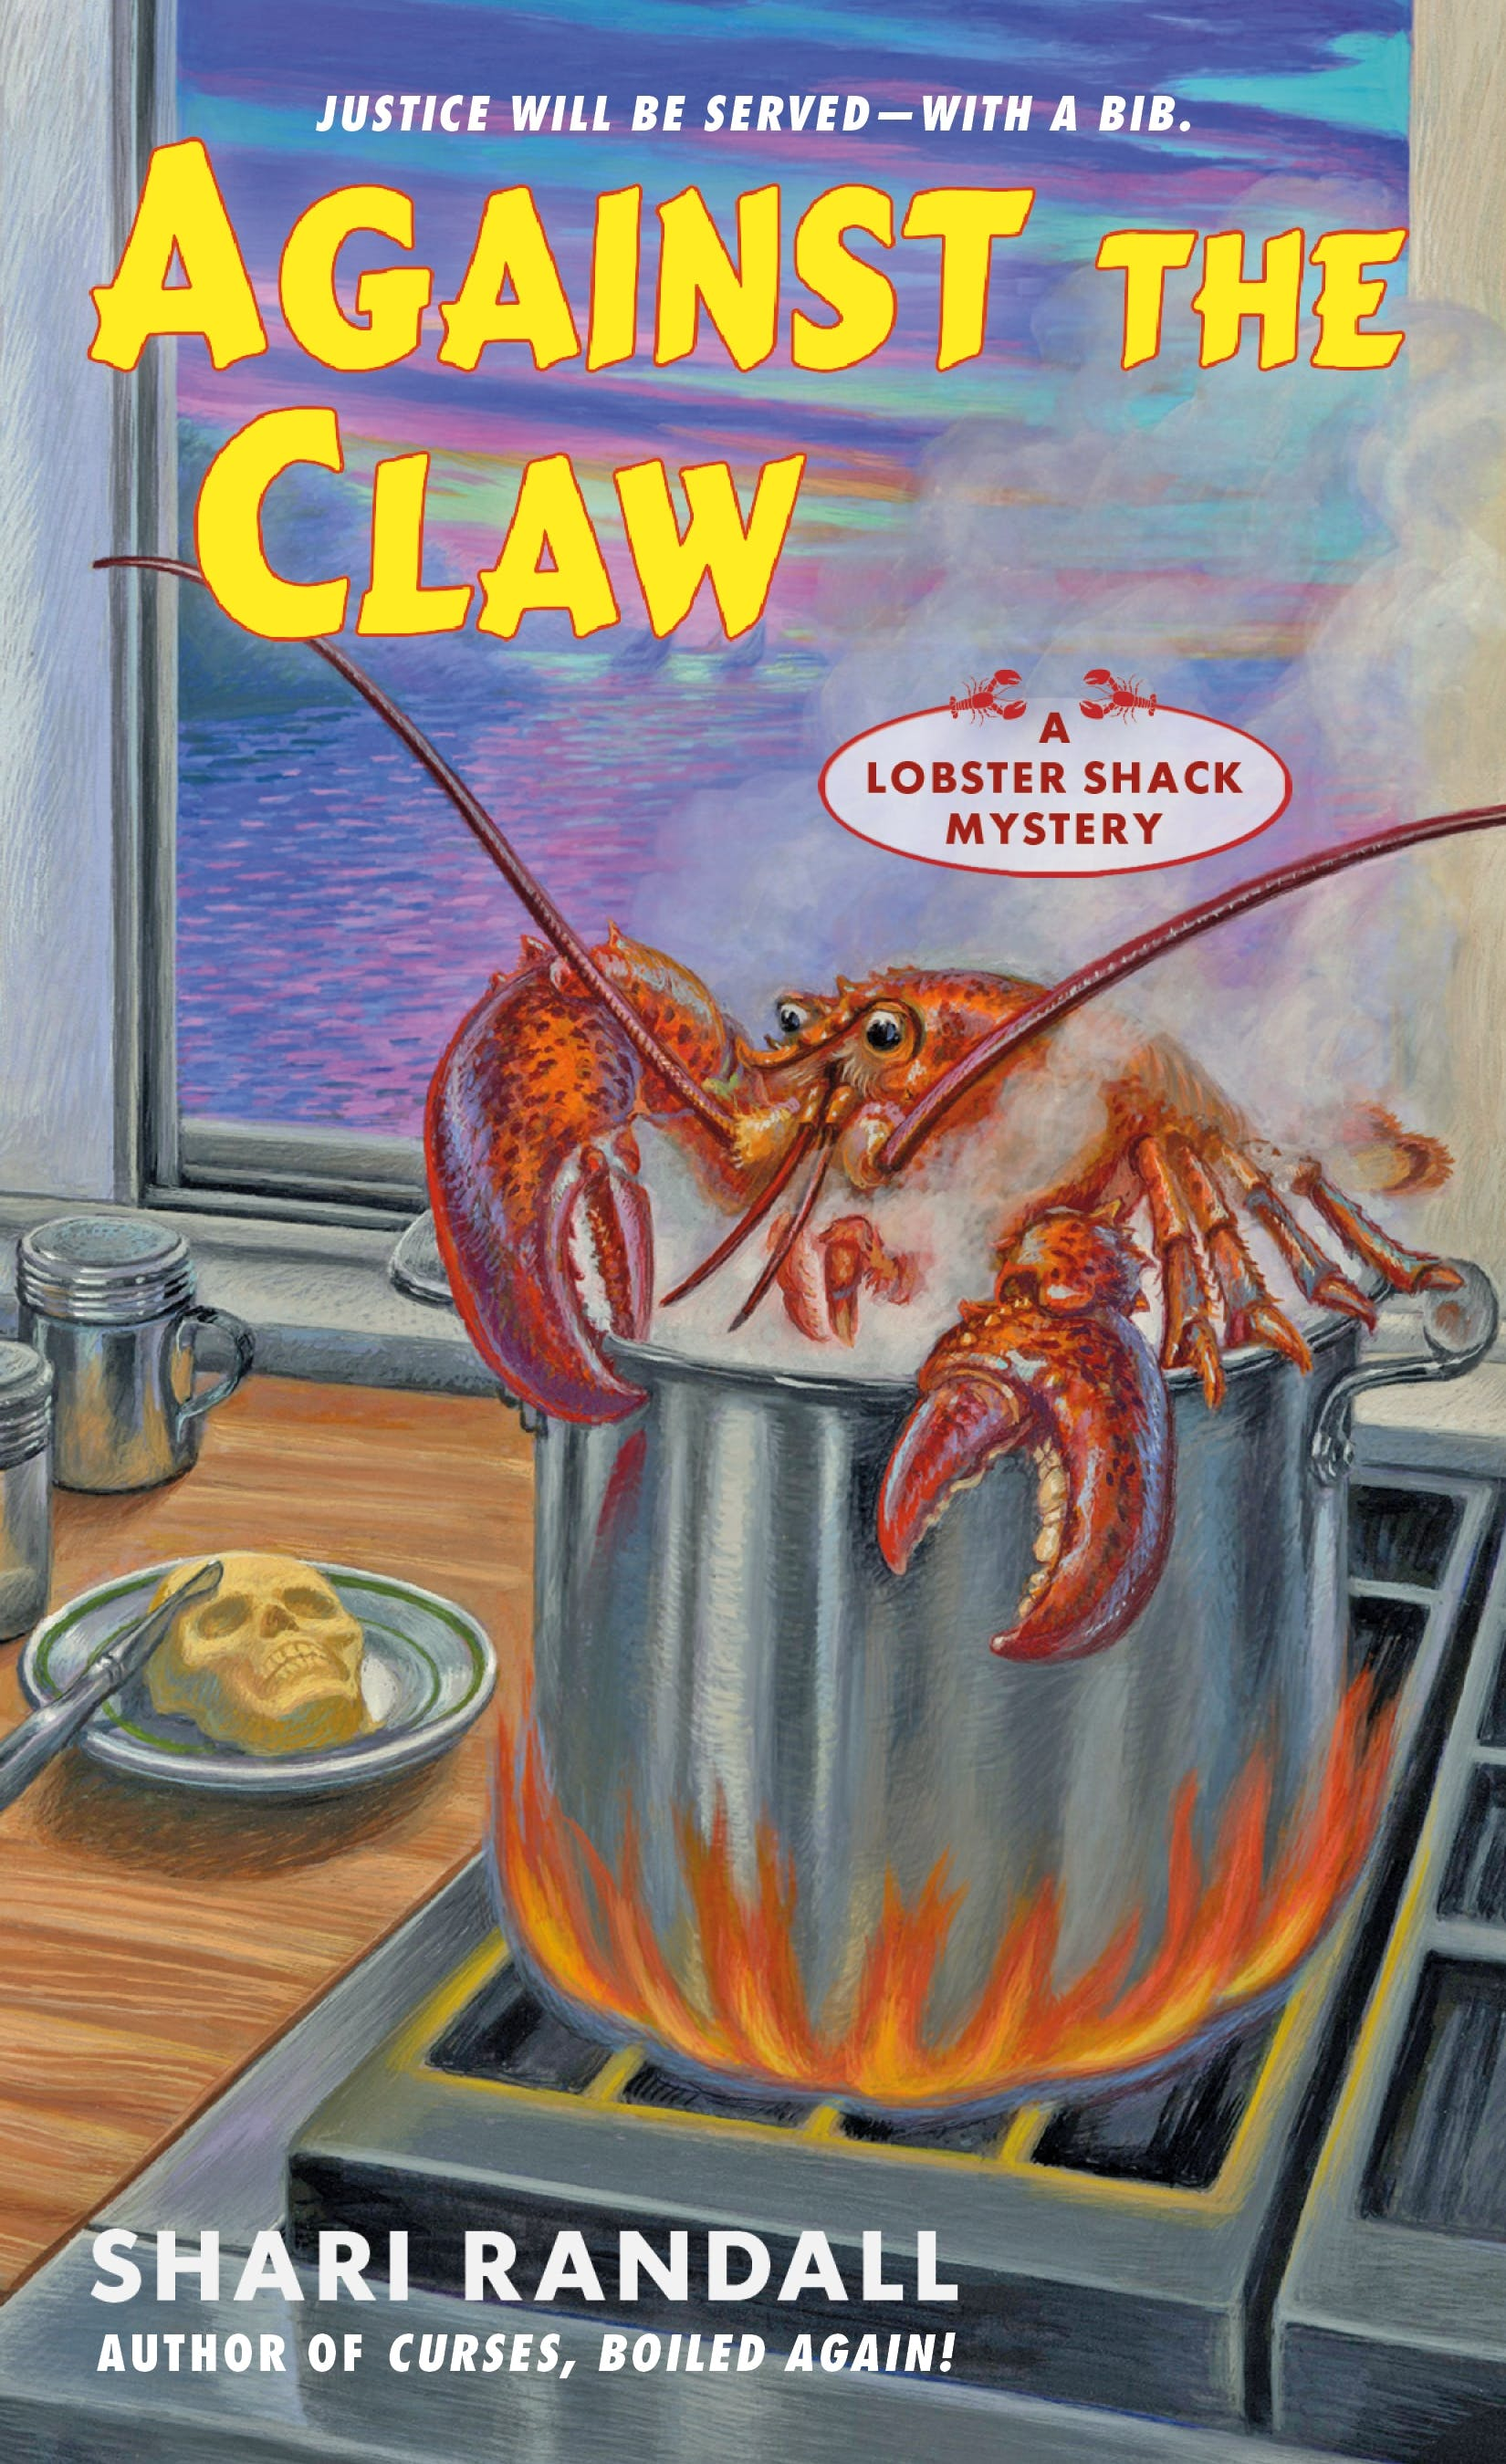 Image of Against the Claw